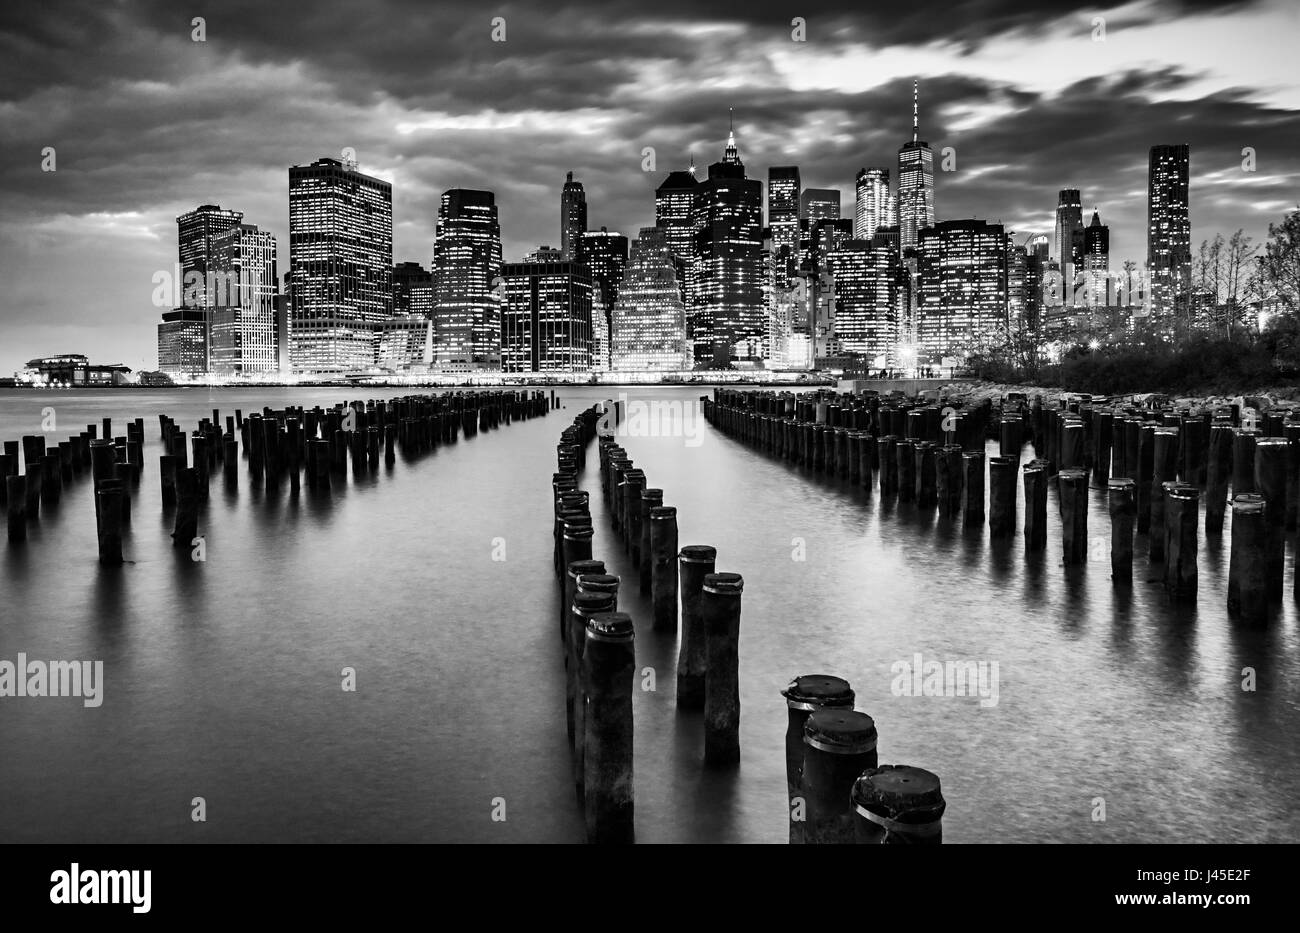 New York City skyline with wood pilings, black & white Stock